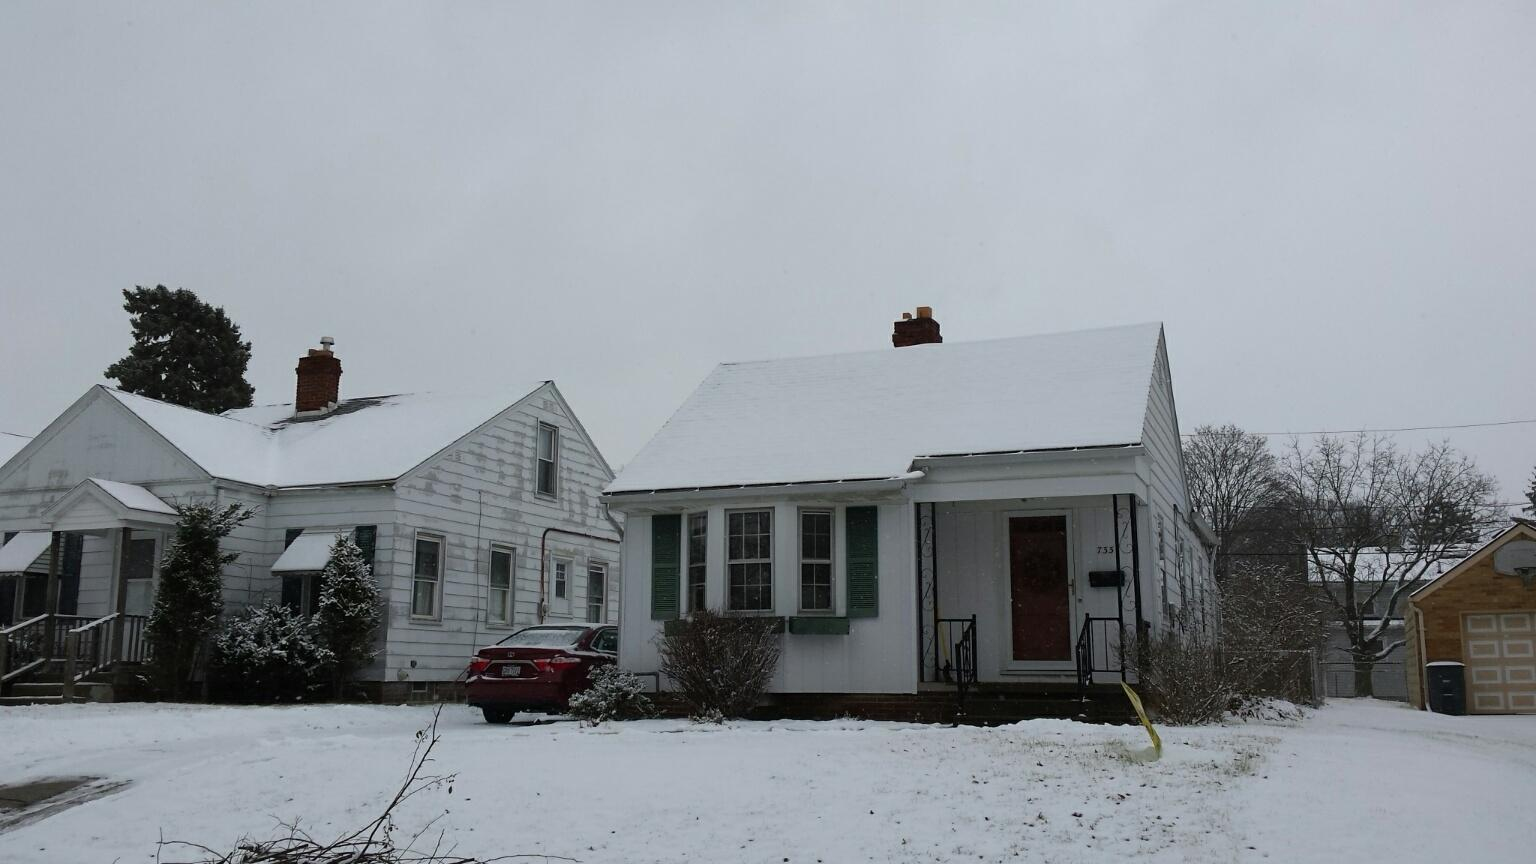 733 Bronx Dr For Rent - Toledo, OH | Trulia